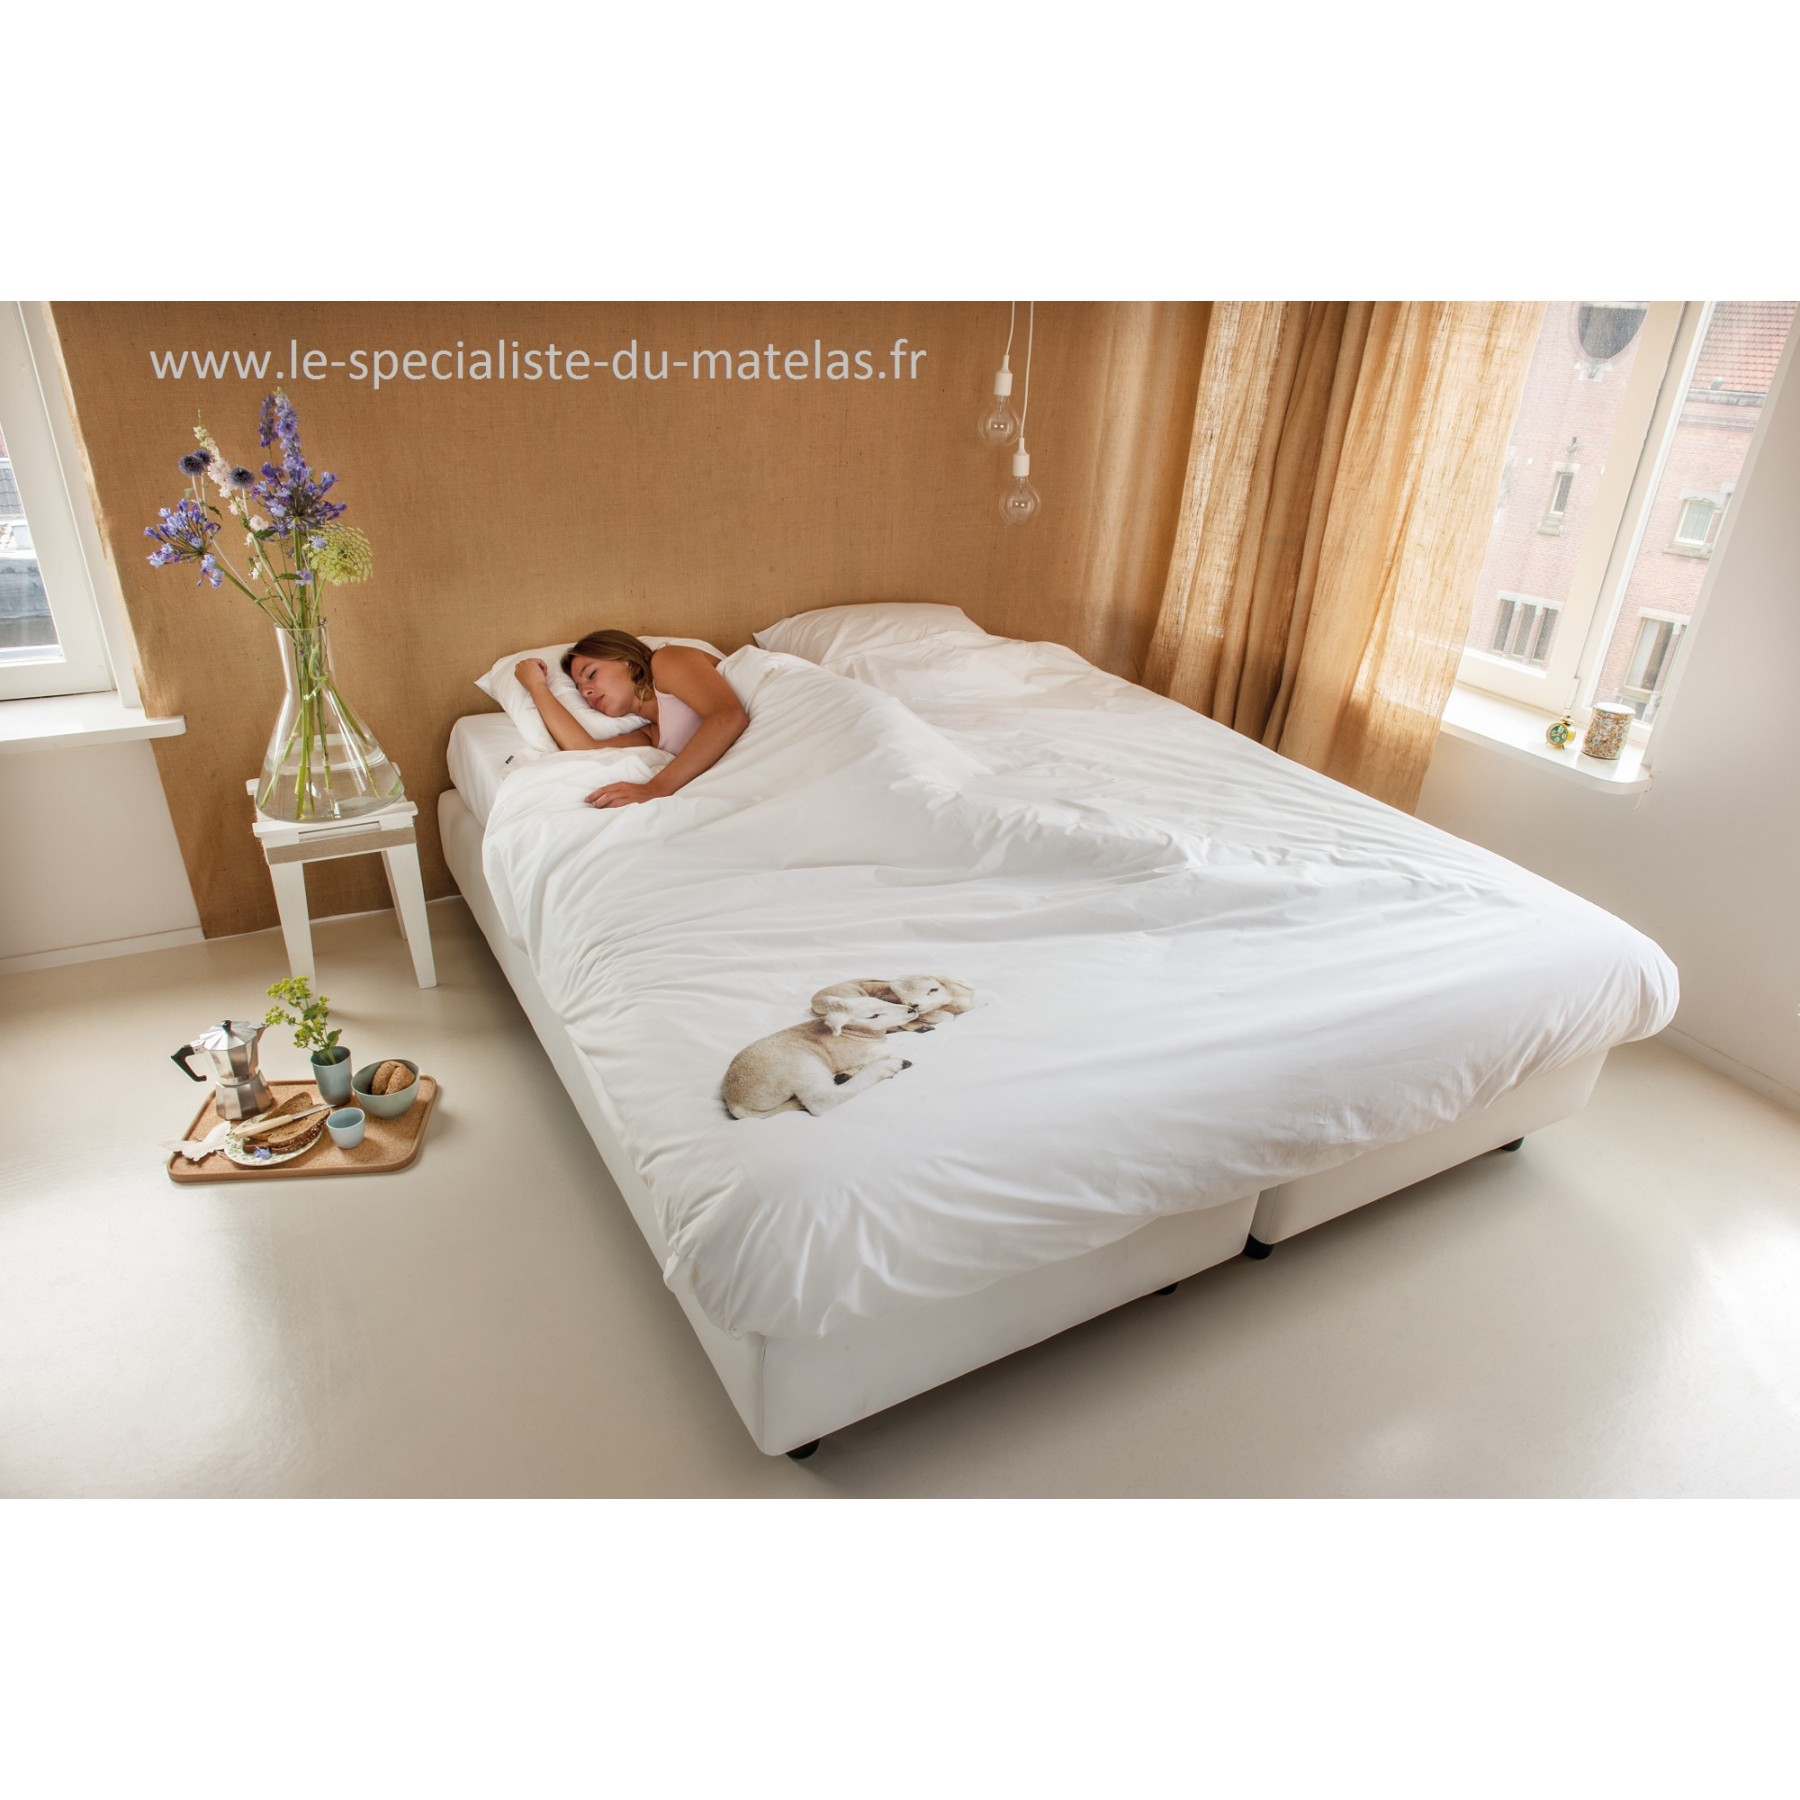 housse de couette snurk mouton d couvrir au le sp cialiste du matelas. Black Bedroom Furniture Sets. Home Design Ideas